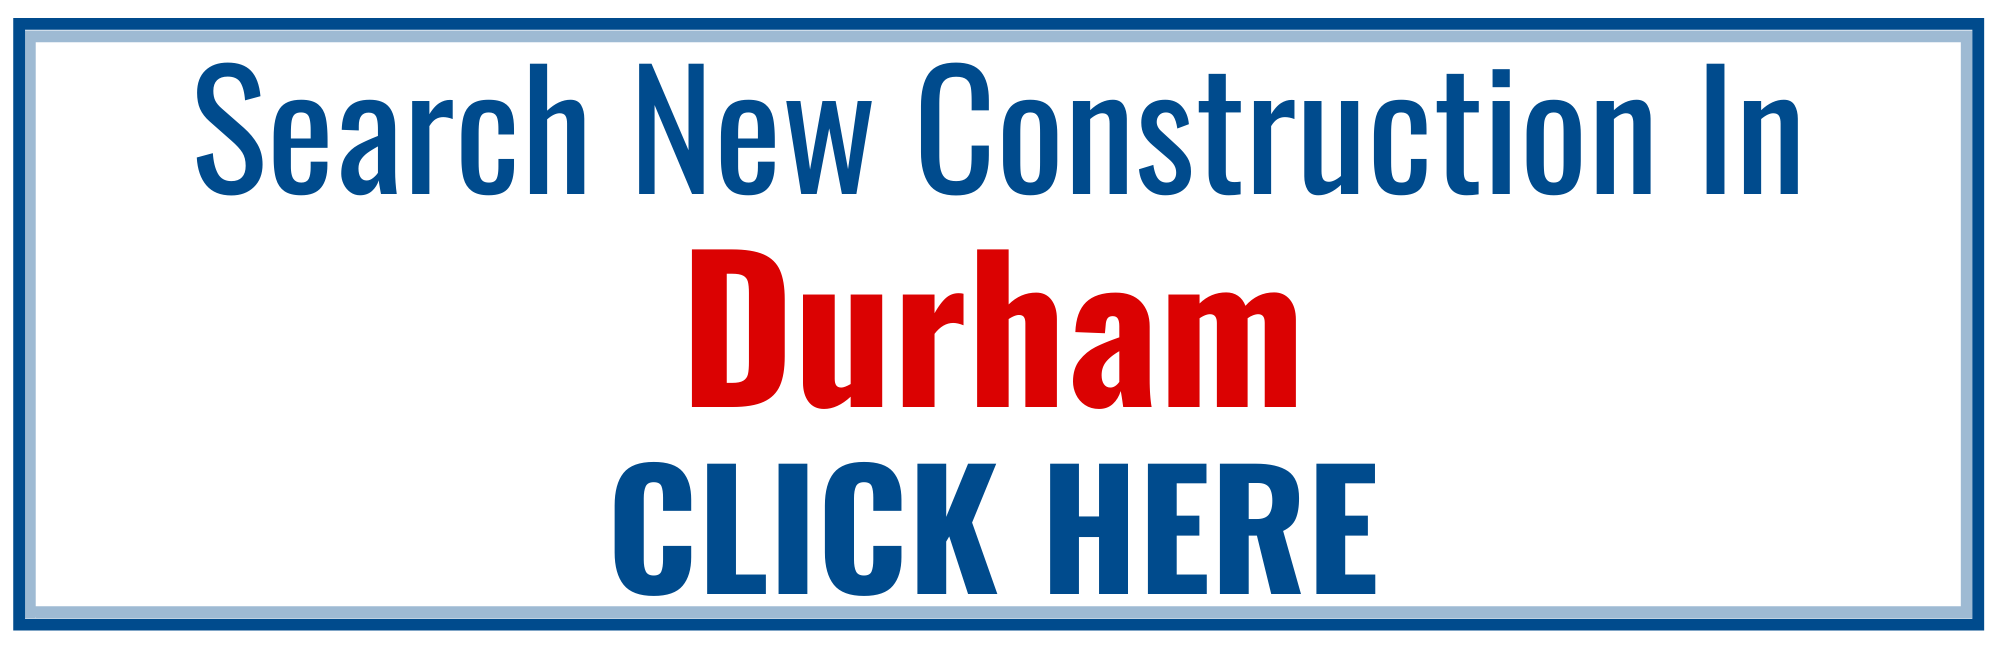 Durham New Construction